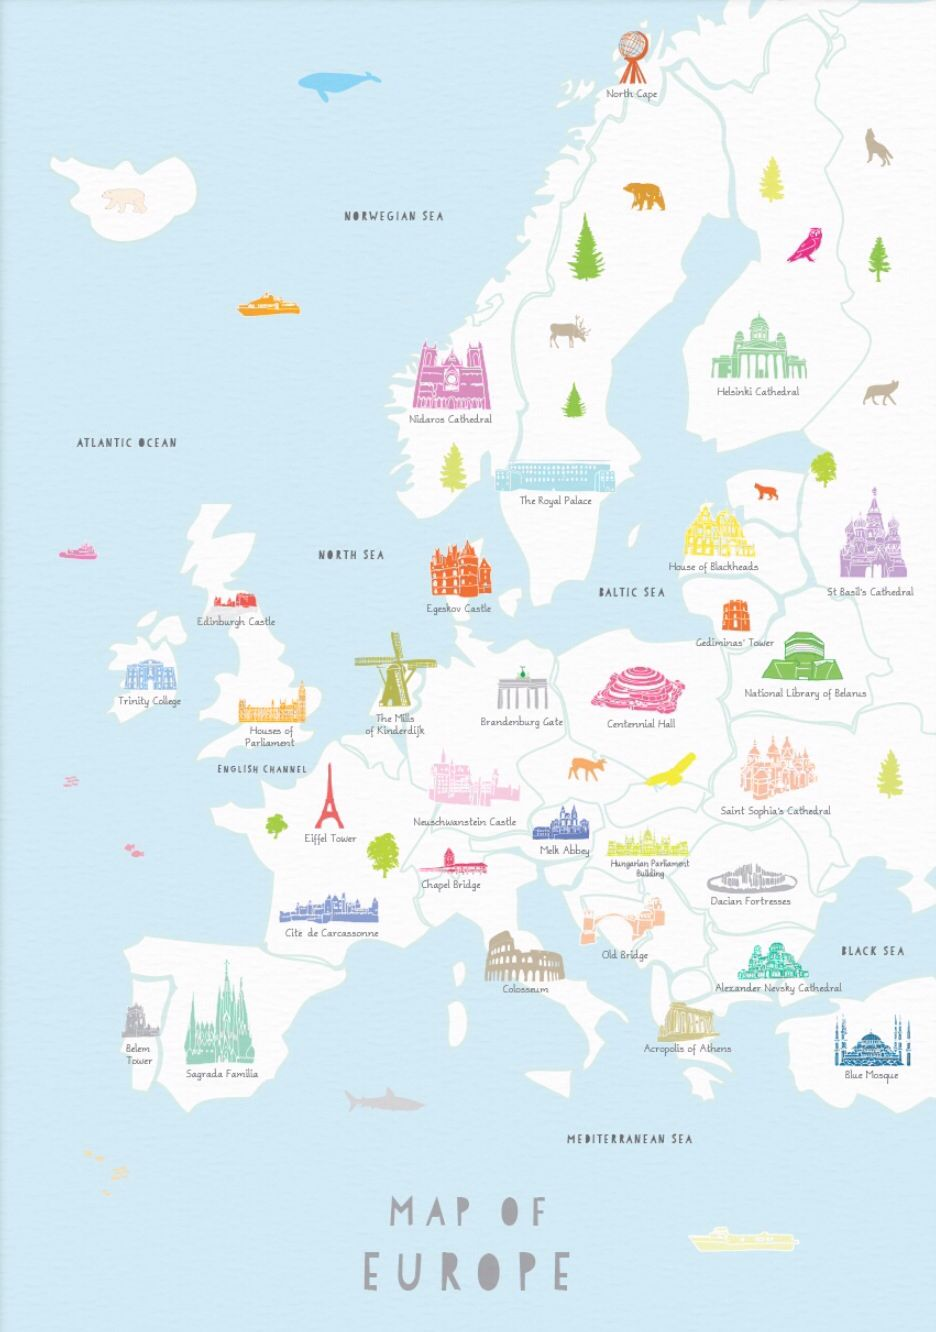 Europa map europa pinterest wanderlust illustrated maps and map of europe by holly francesca travel design gumiabroncs Choice Image